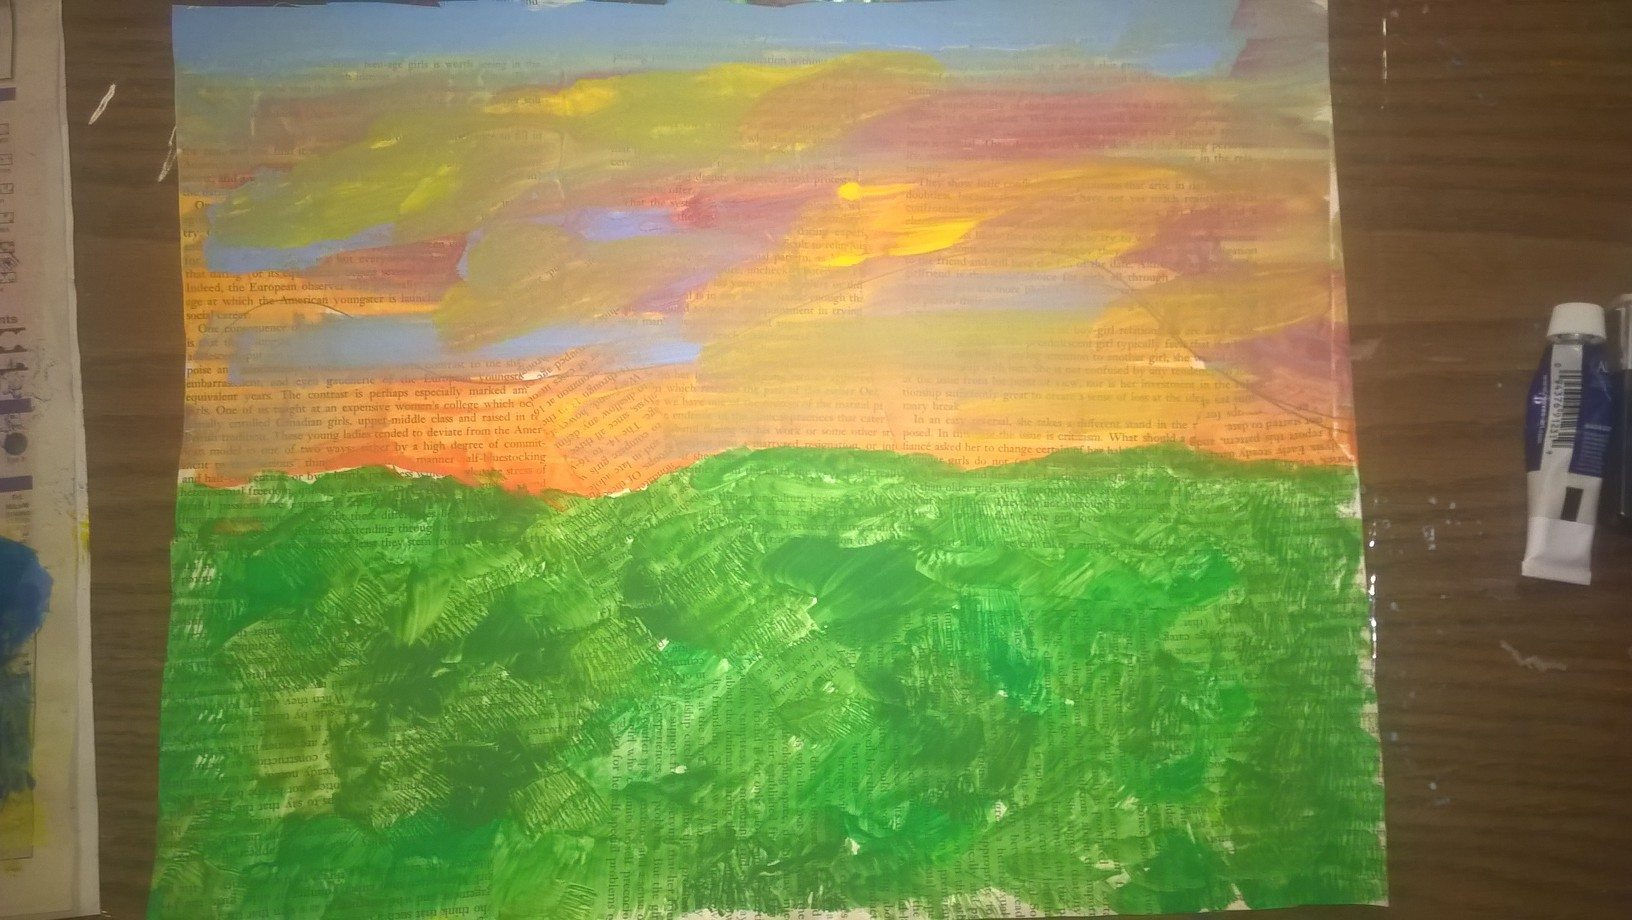 painted sunset and grass background over newspaper background